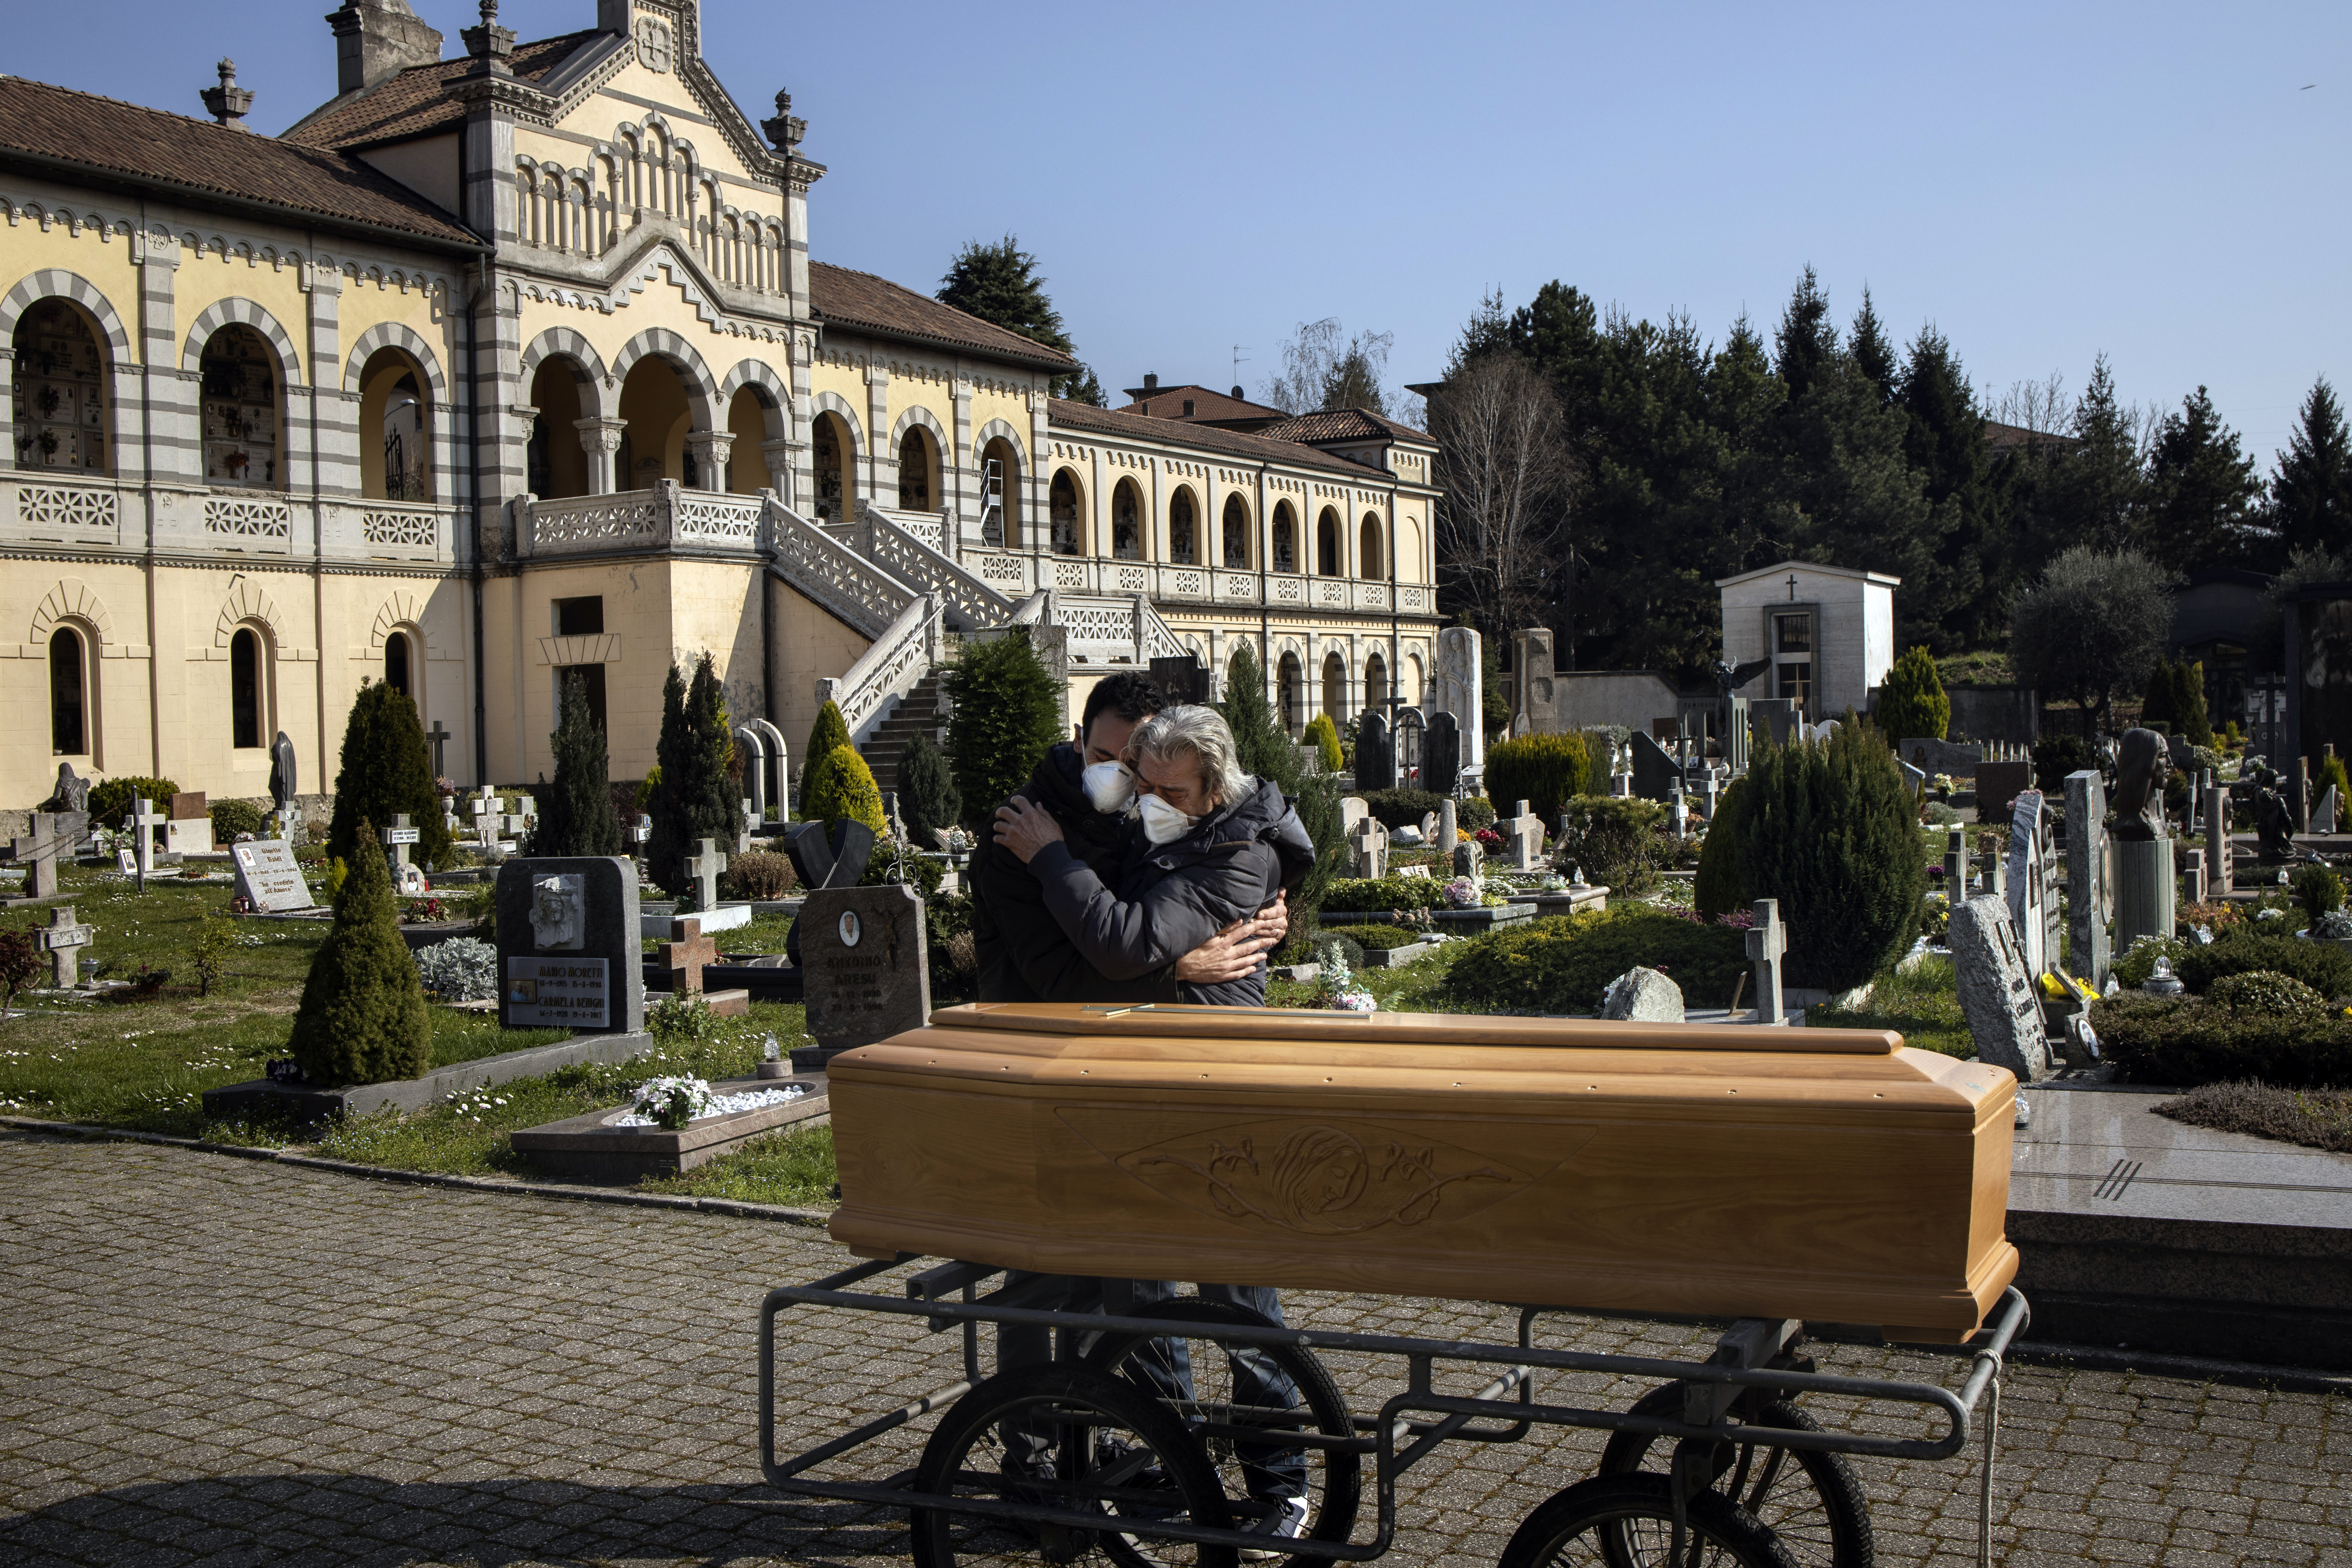 The husband and son of Teresina Gregis mourn after her funeral in Alzano Lombardo, Italy, March 21, 2020. Gregis, who had pre-existing heart and respiratory problems, died at home without being tested for the coronavirus.